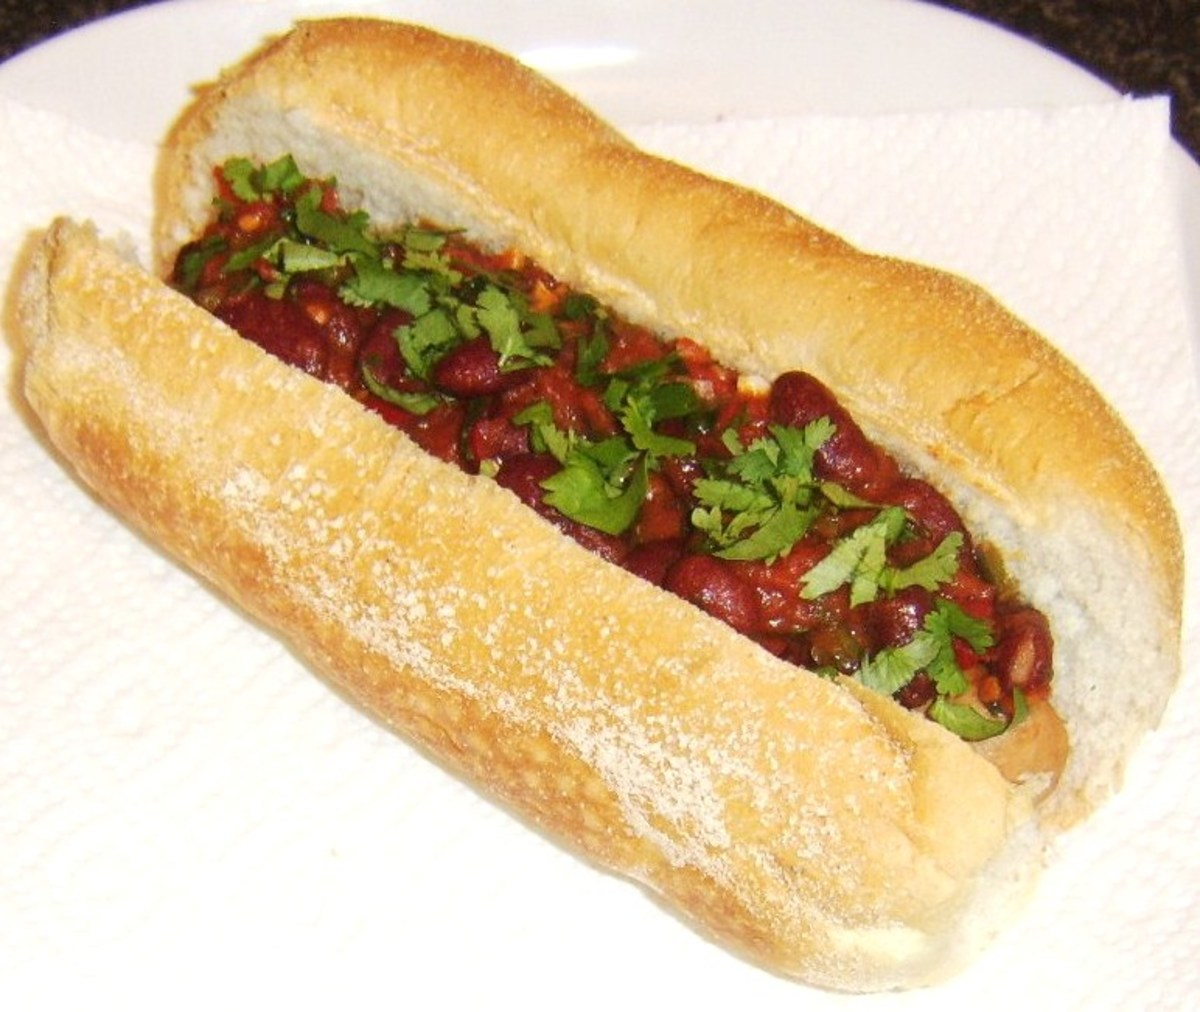 Spicy red kidney bean chilli hot dog